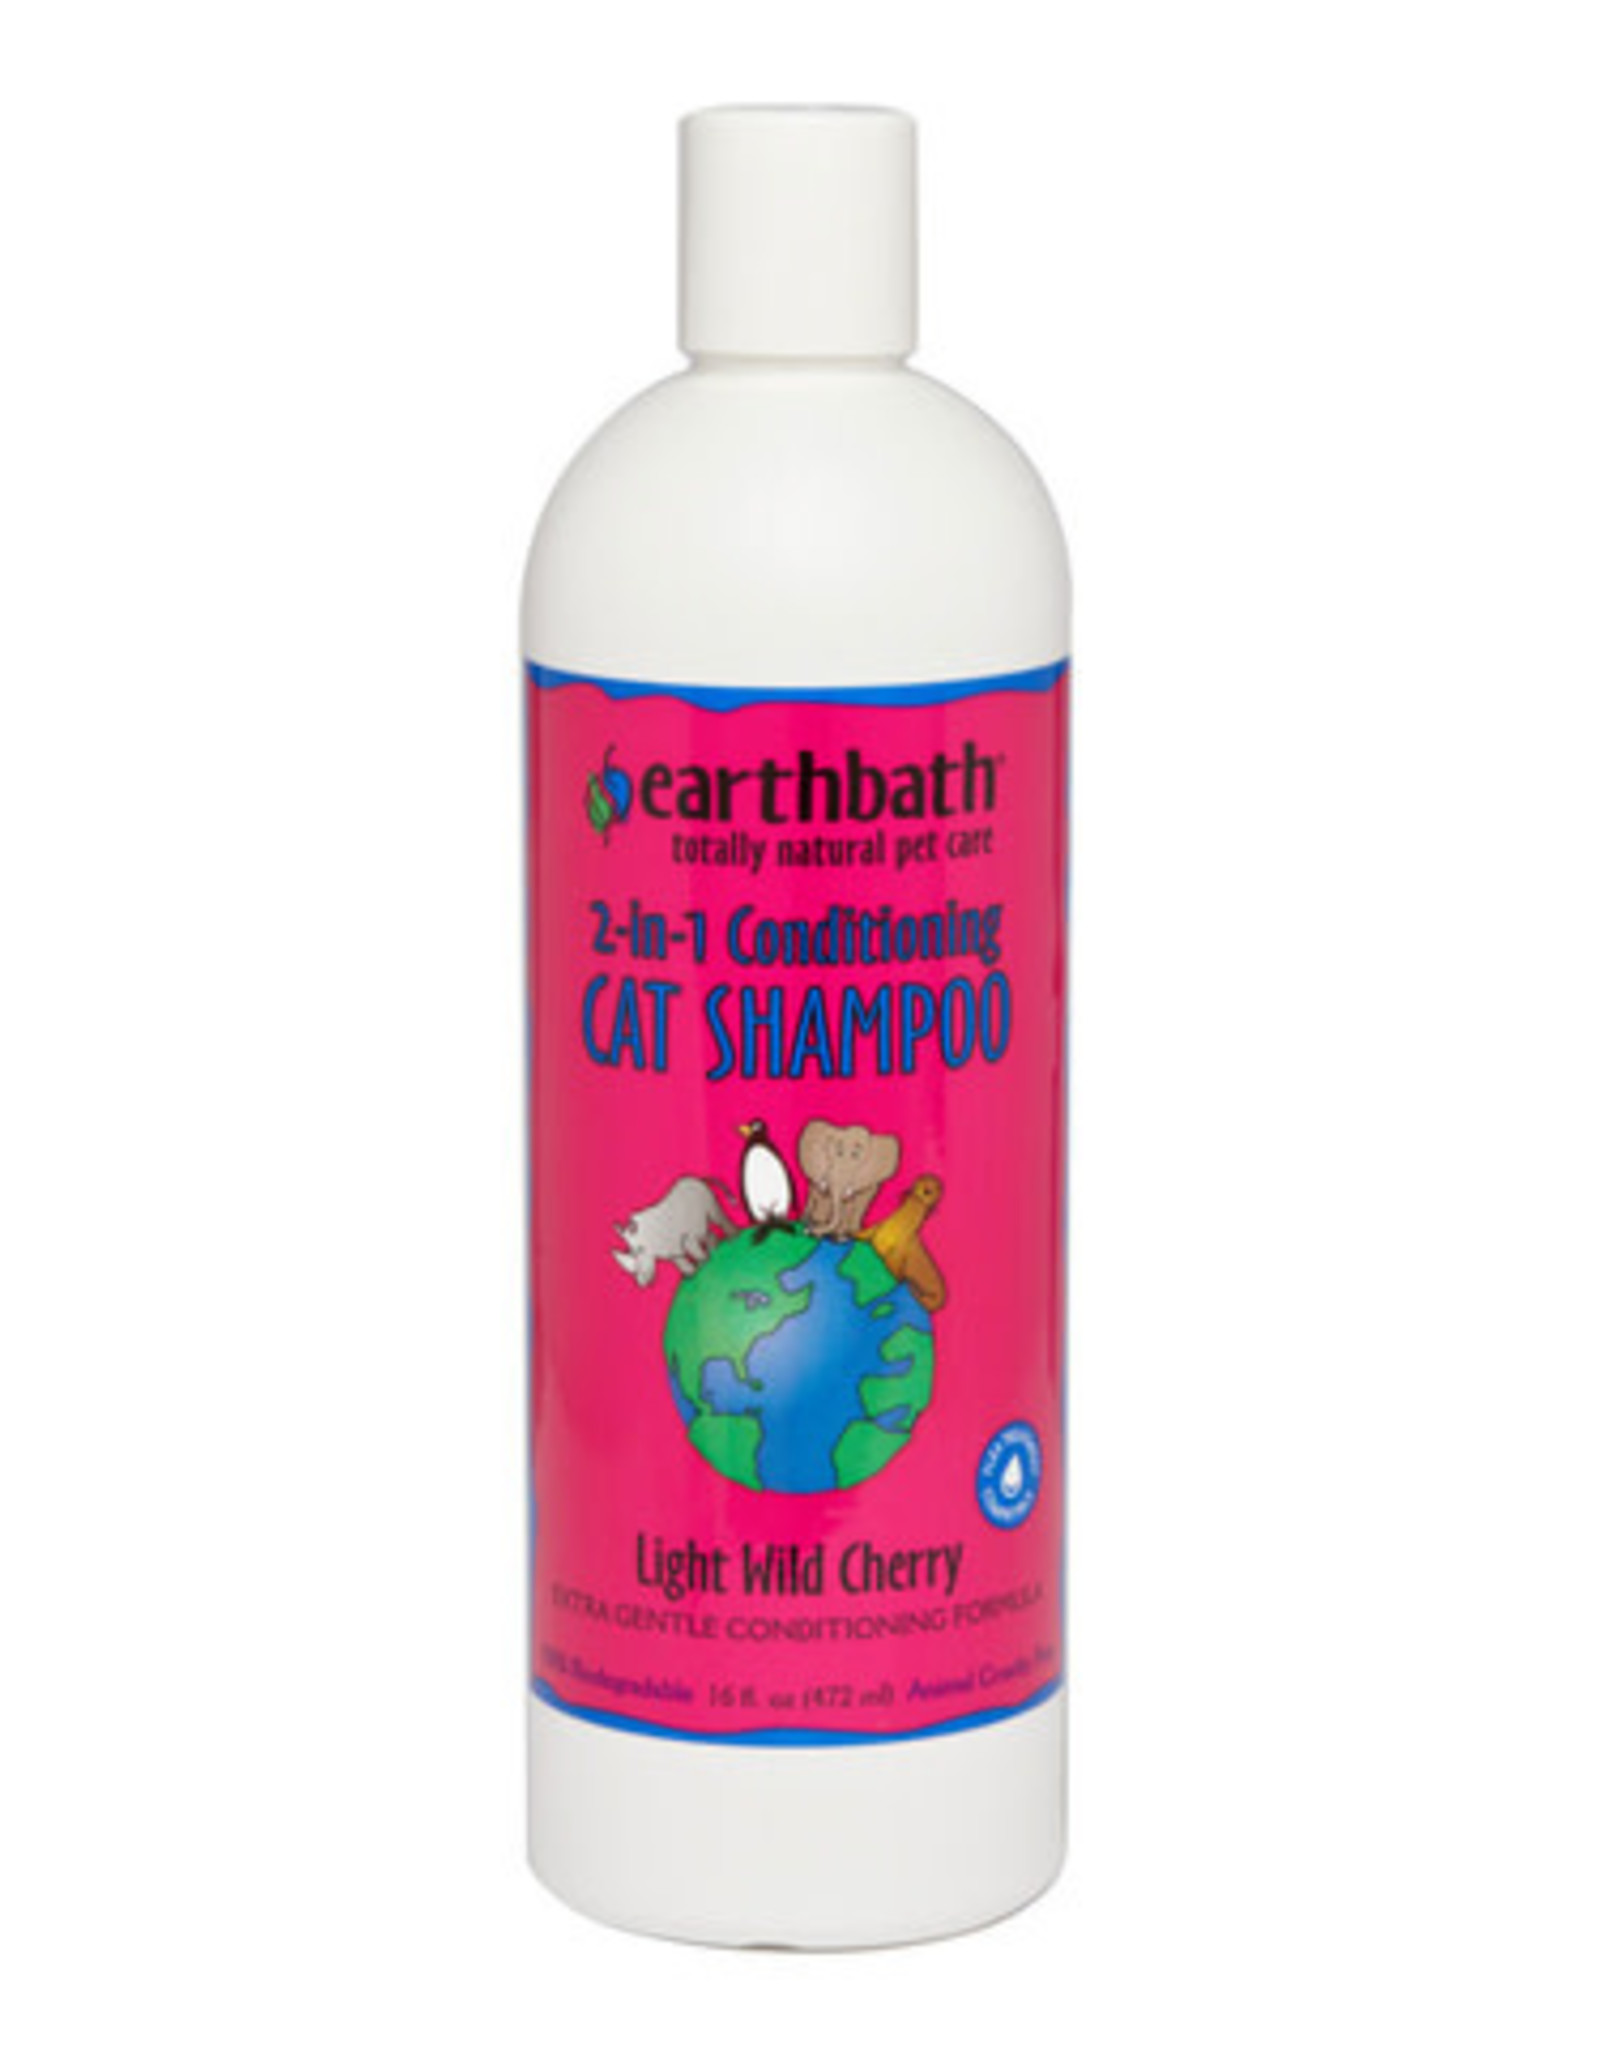 Earthbath 2-IN-1 Conditioning Shampoo For Cats